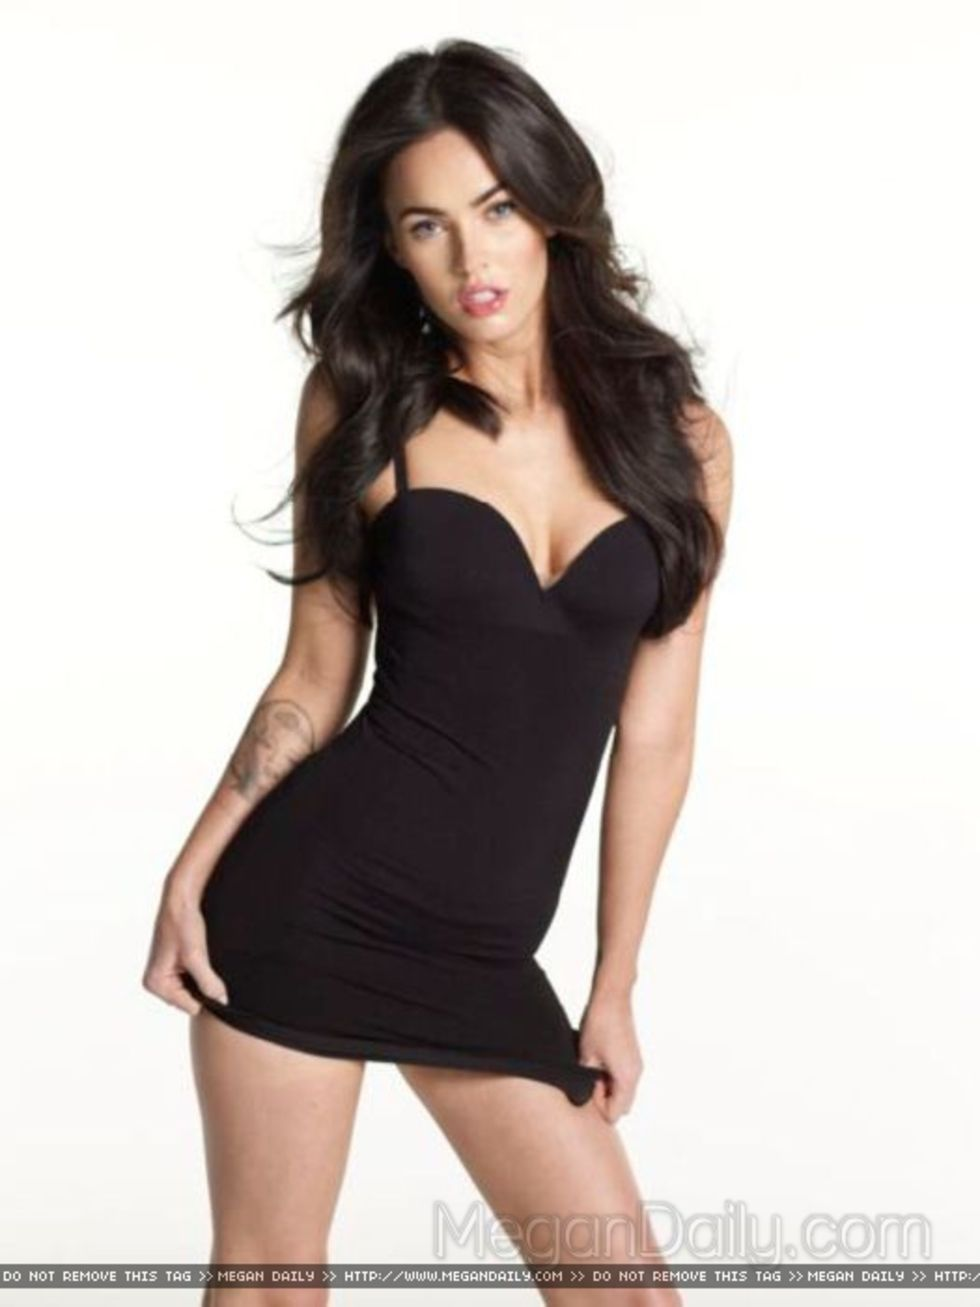 megan-fox-rolling-stone-magazine-photoshoot-outtakes-lq-01